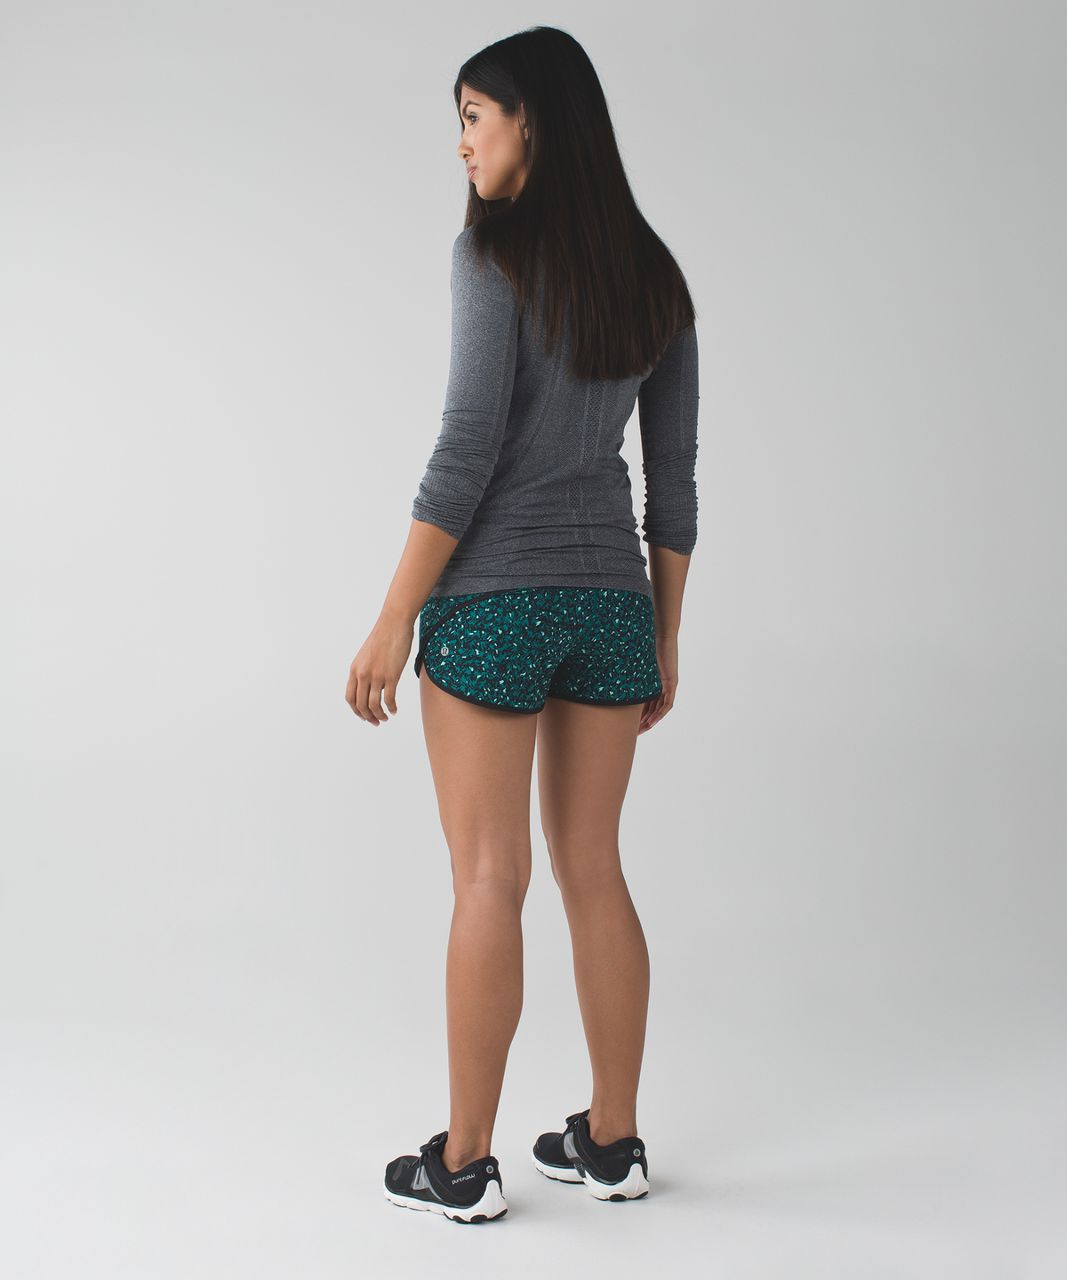 Lululemon Run:  Speed Short *4-way Stretch - Mountain Peaks Black Forage Teal / Black / Menthol